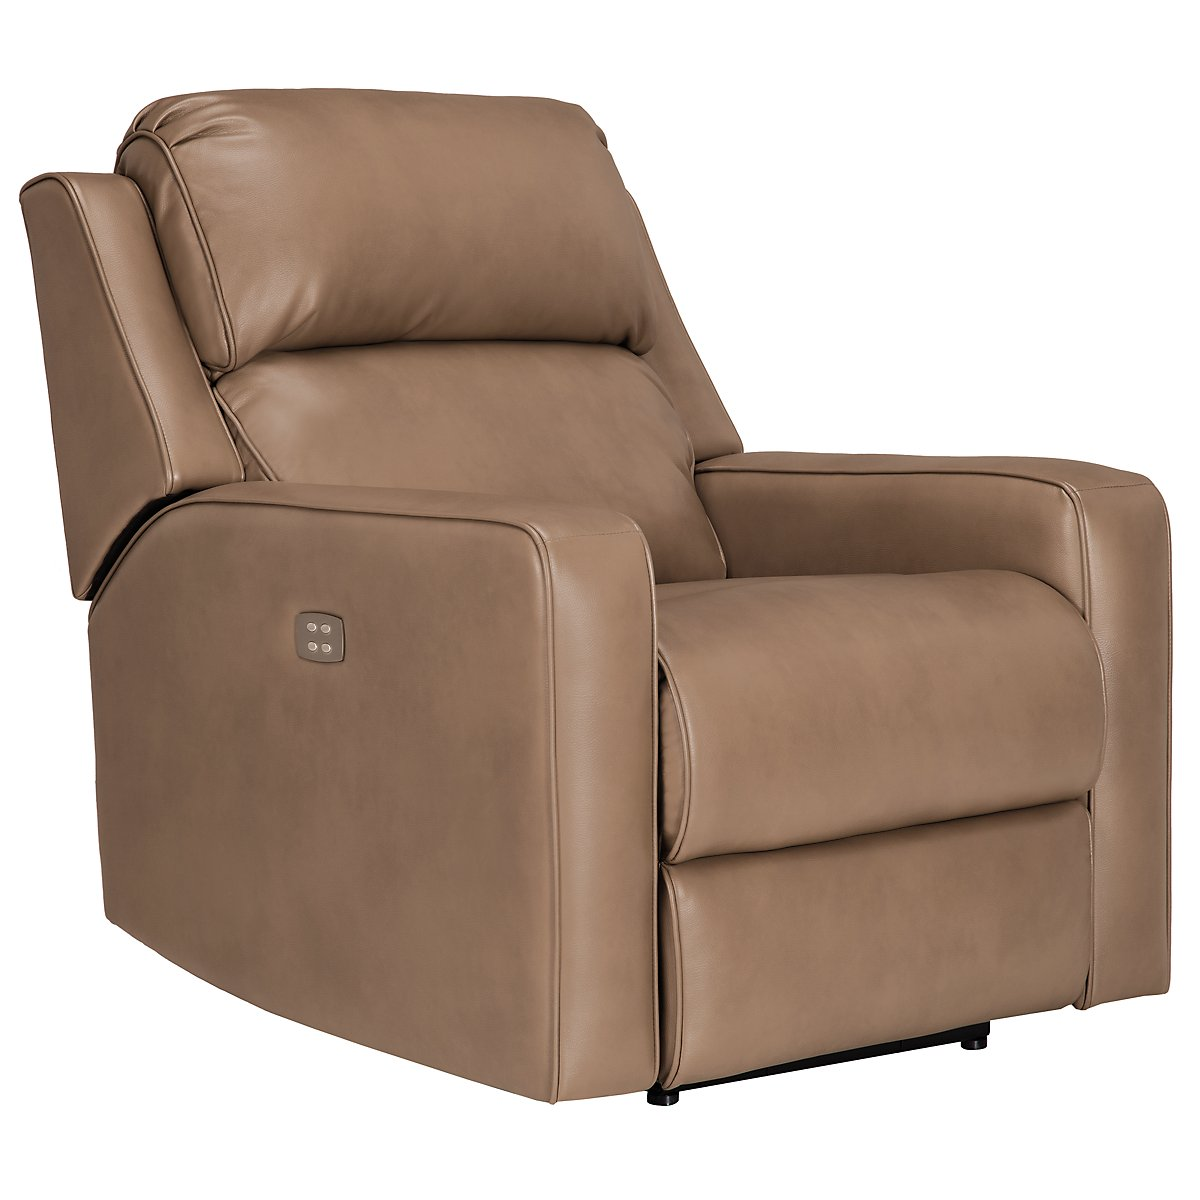 Rocco Dk Taupe Microfiber Power Recliner